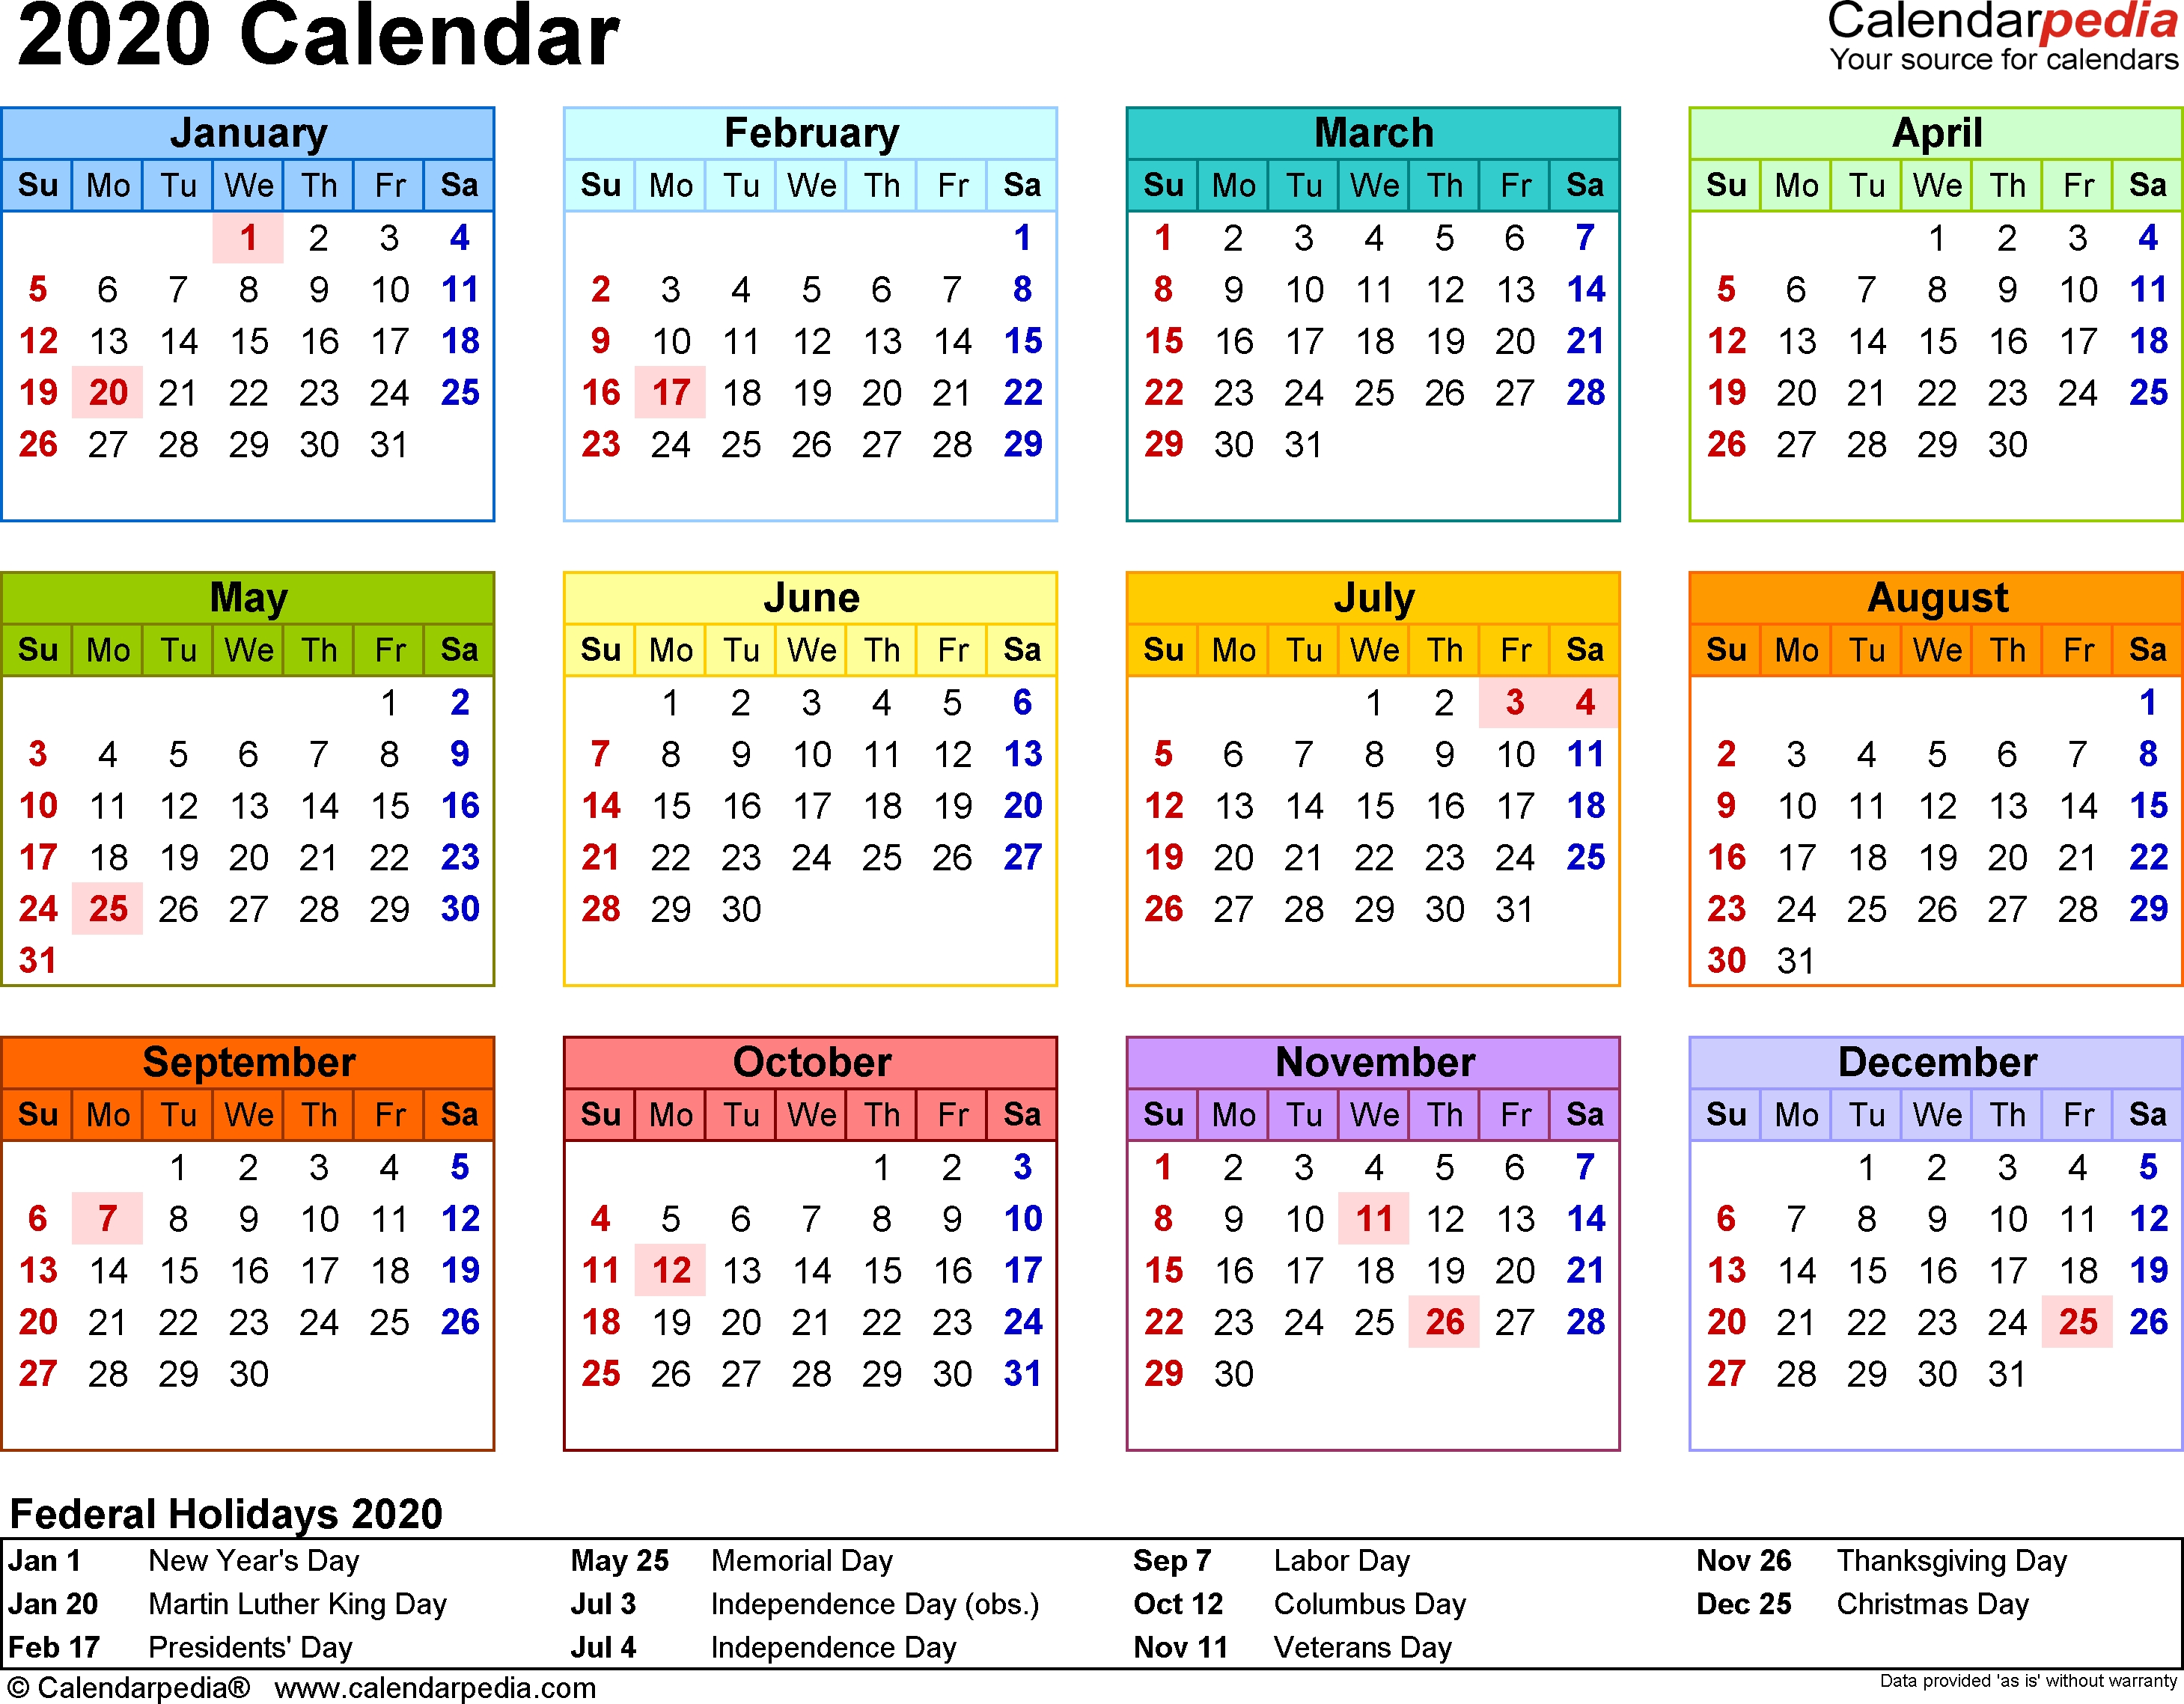 2020 Calendar Pdf - 18 Free Printable Calendar Templates-Template For Philippine Calendar 2020